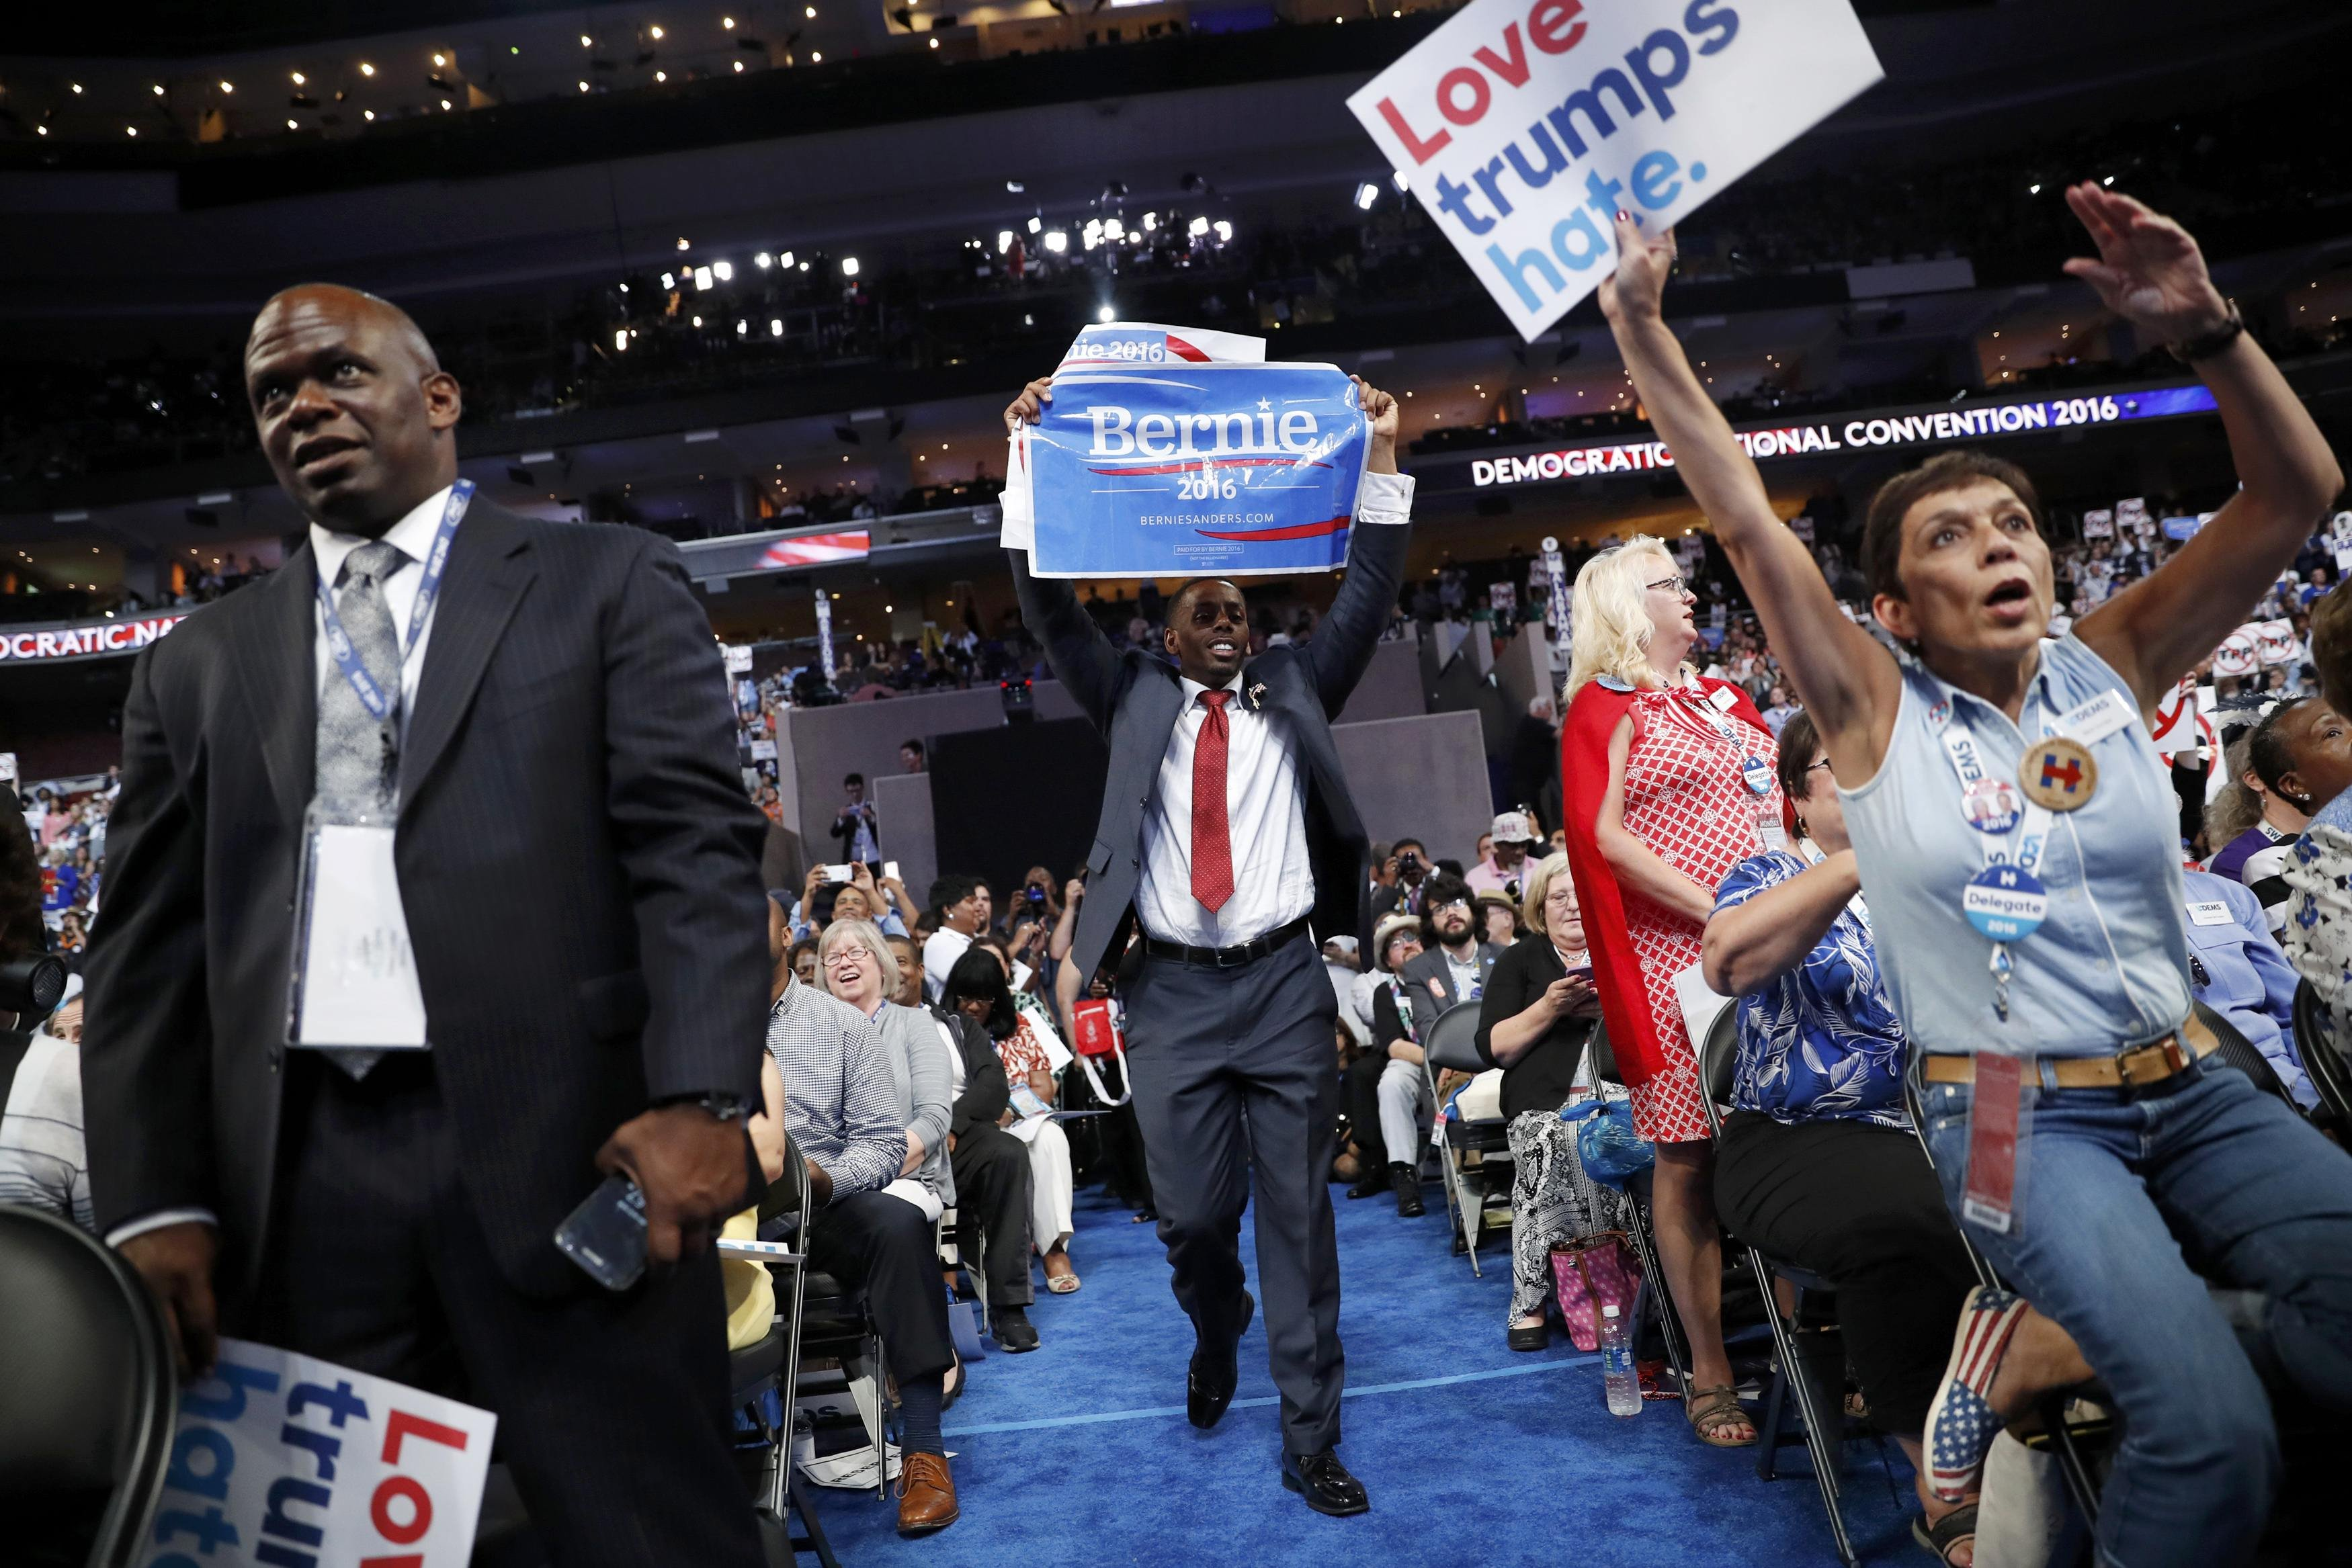 A supporter of former Democratic presidential candidate Bernie Sanders approaches the podium with a Sanders campaign sign during the report of the Rules Committee at the Democratic National Convention in Philadelphia on July 25, 2016.